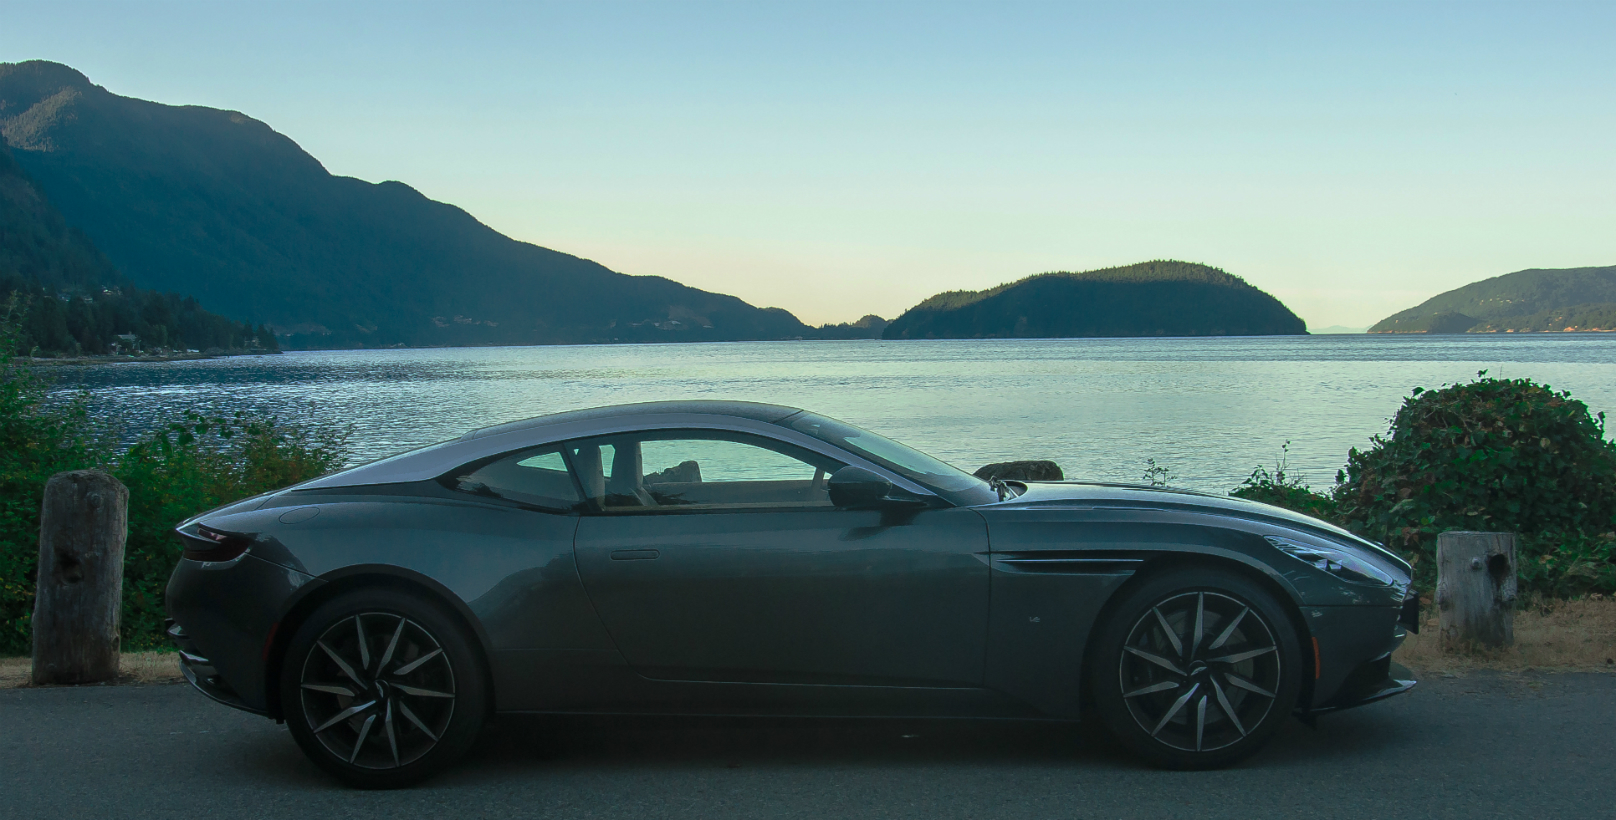 coming to terms with the aston martin db11 – wheels.ca